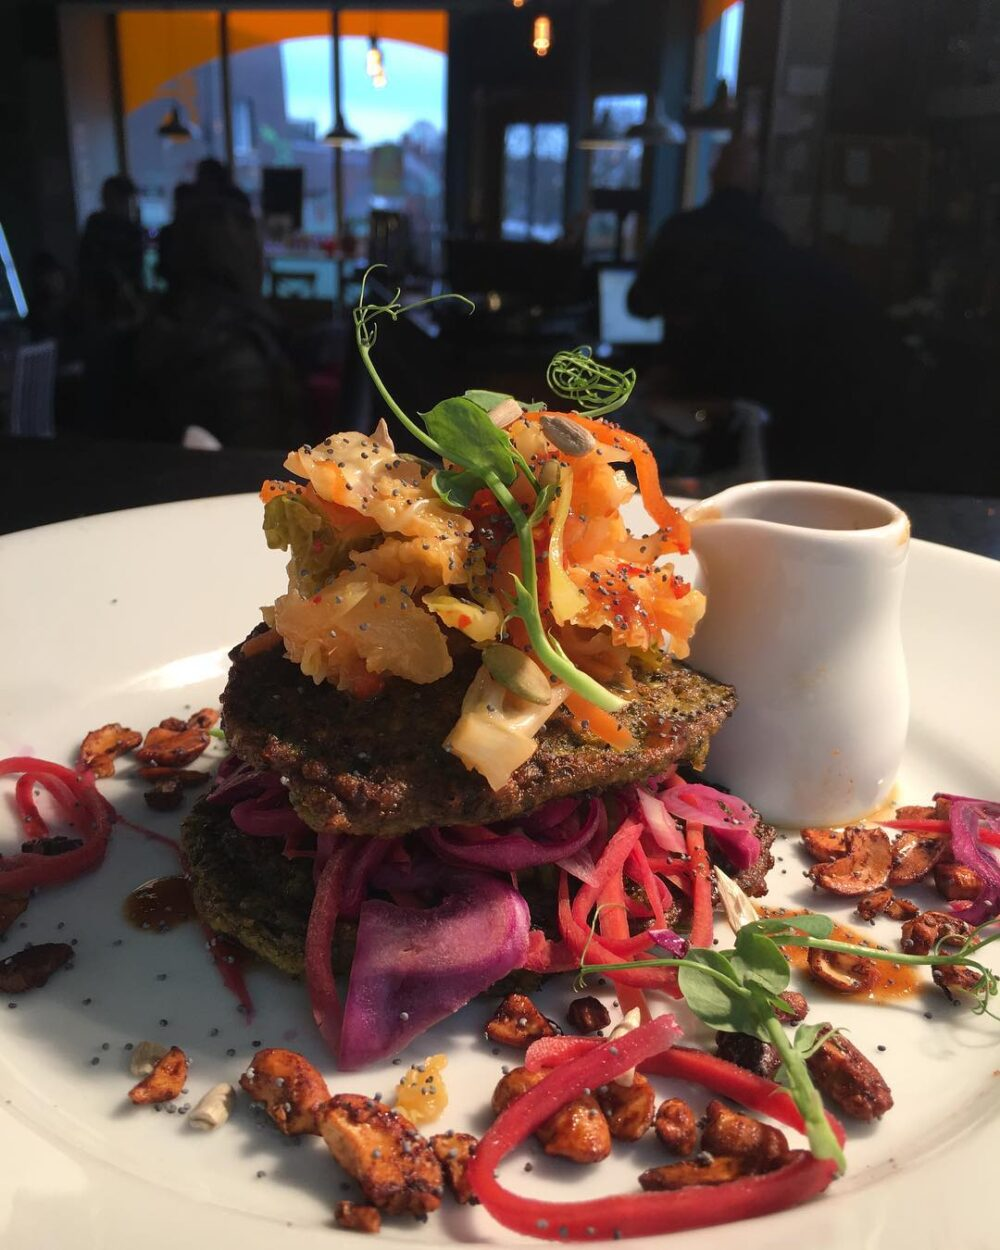 The Little Green Social is in Sandford, Newcastle and boasts an ever canging menu of delicious vegan starters, mains and desserts